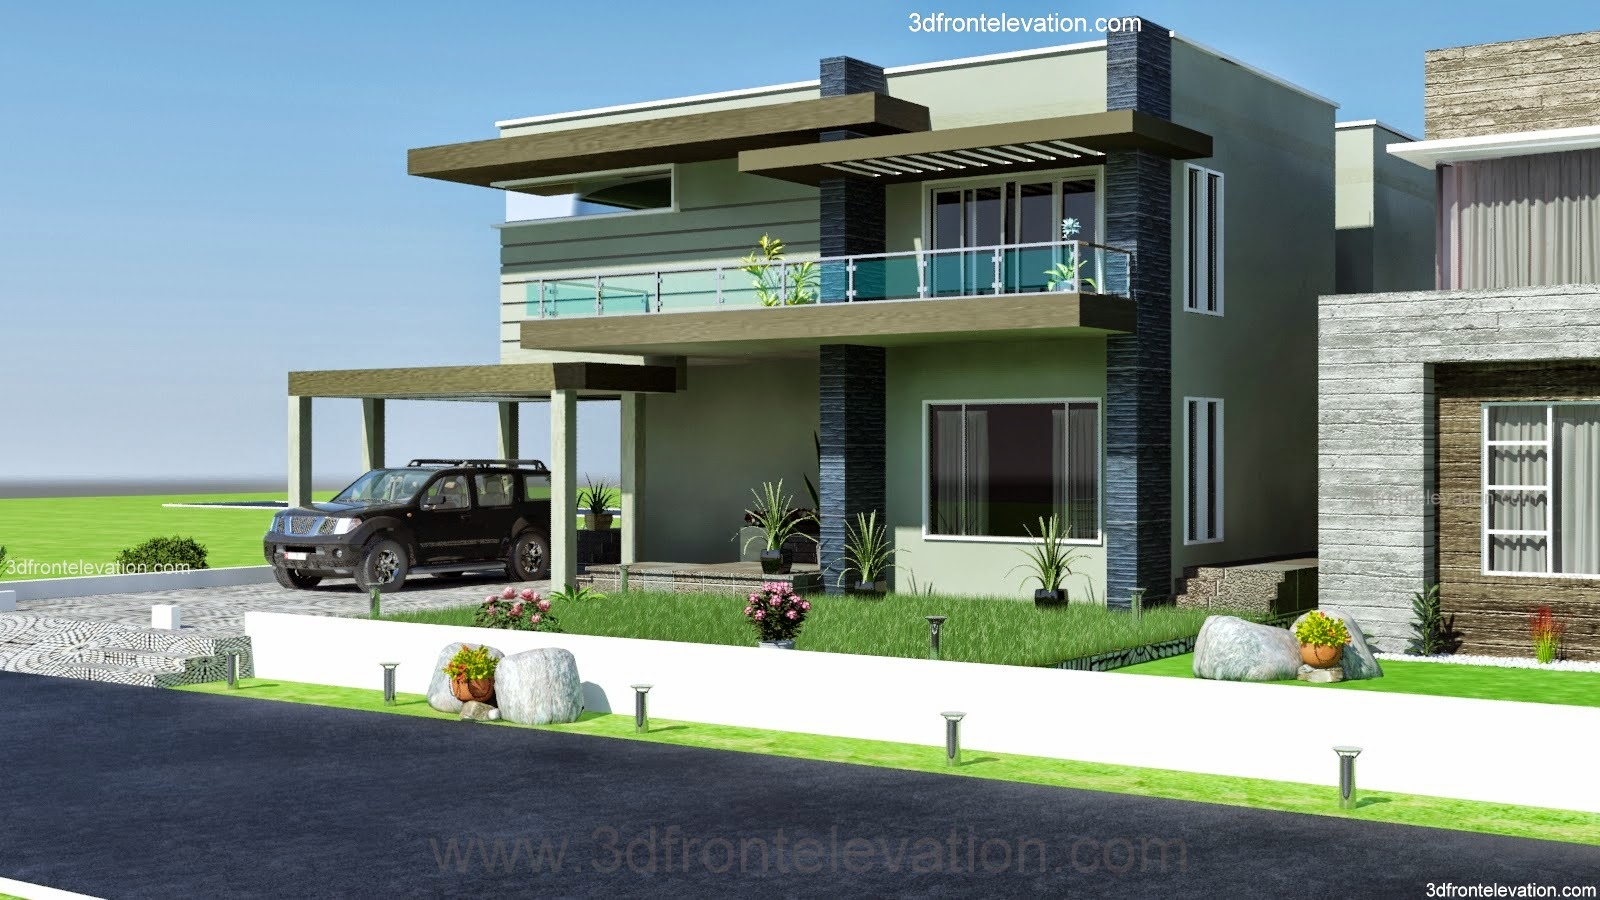 House design karachi - House Front Designs In Karachi